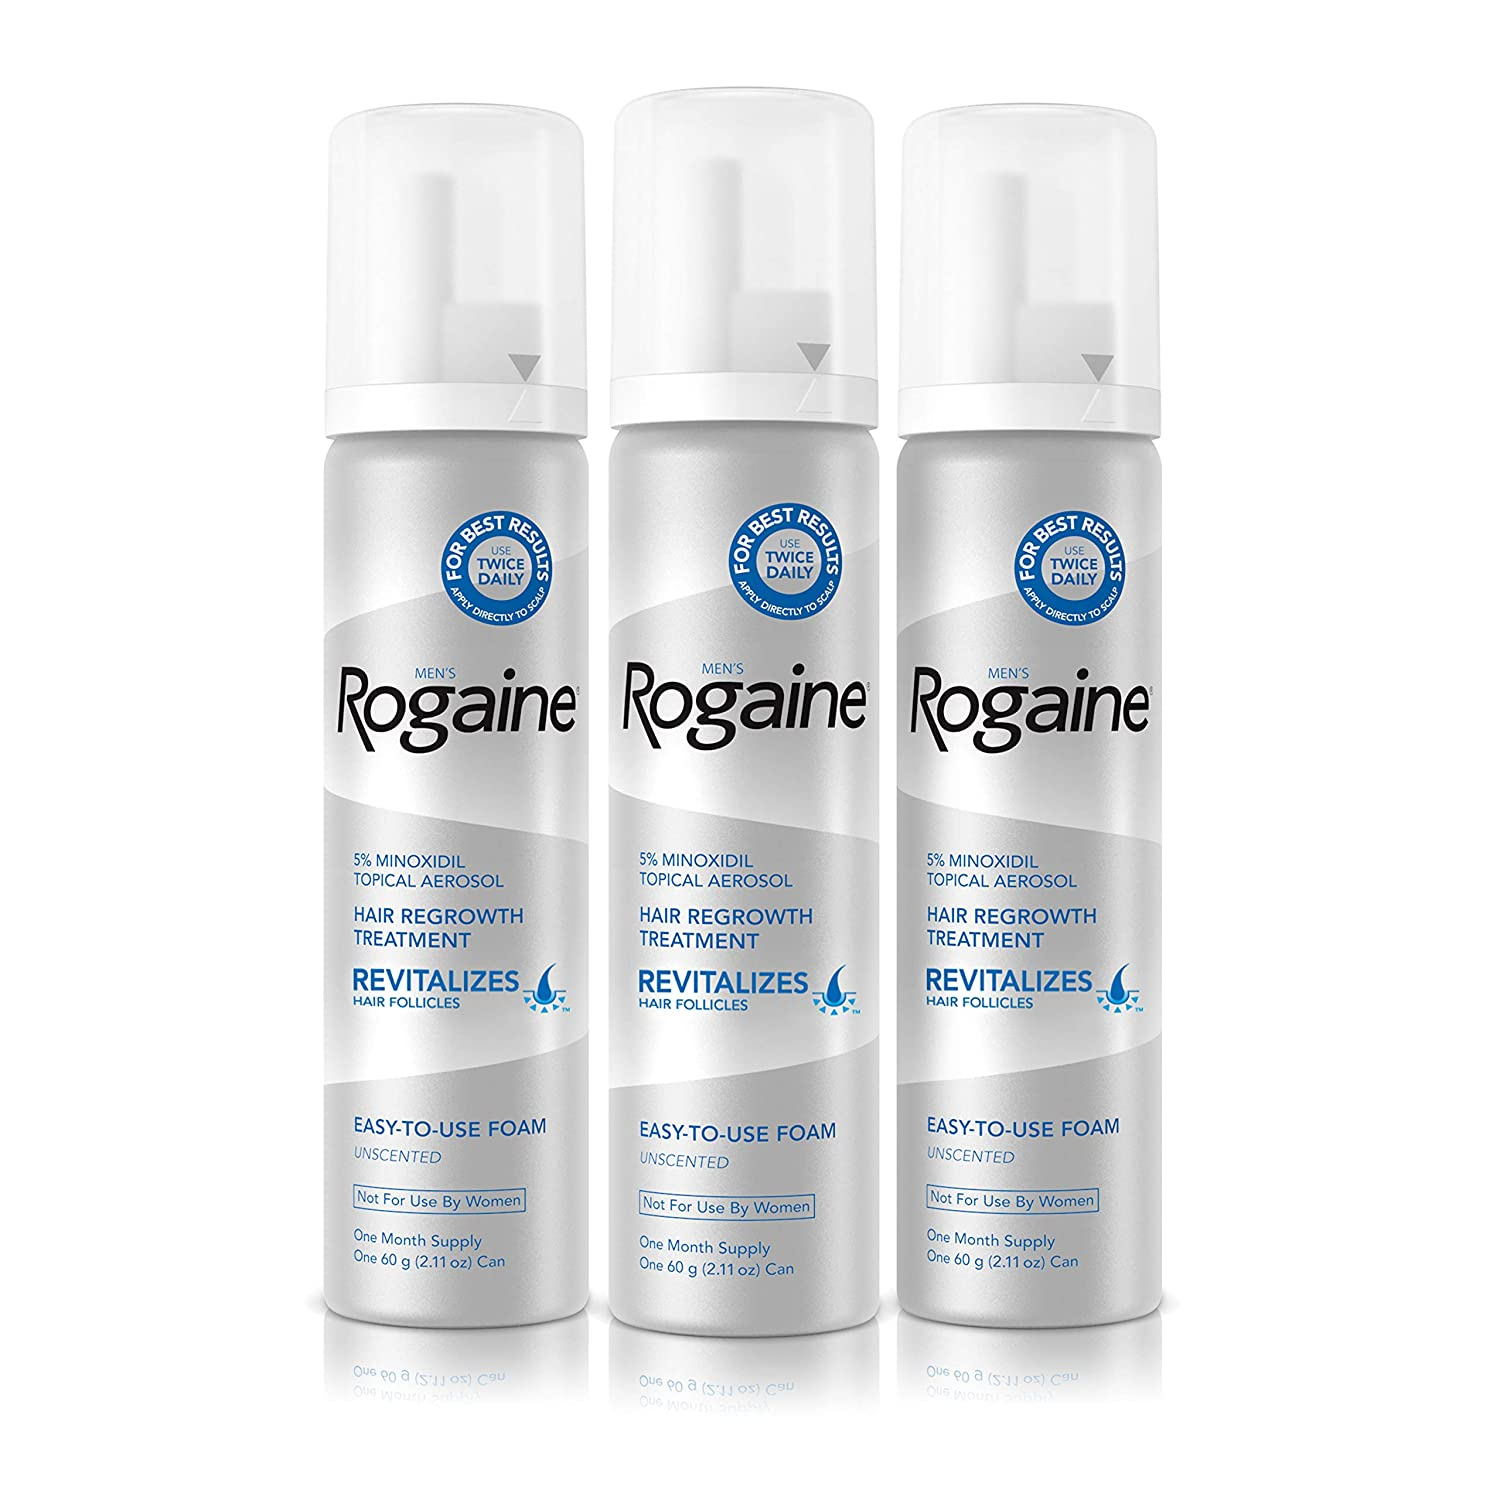 Mens Rogaine 5% Minoxidil Foam for Hair Loss and Hair Regrowth, Topical Treatment for Thinning Hair, 3-Month Supply, 2.11 Oz, Pack of 3